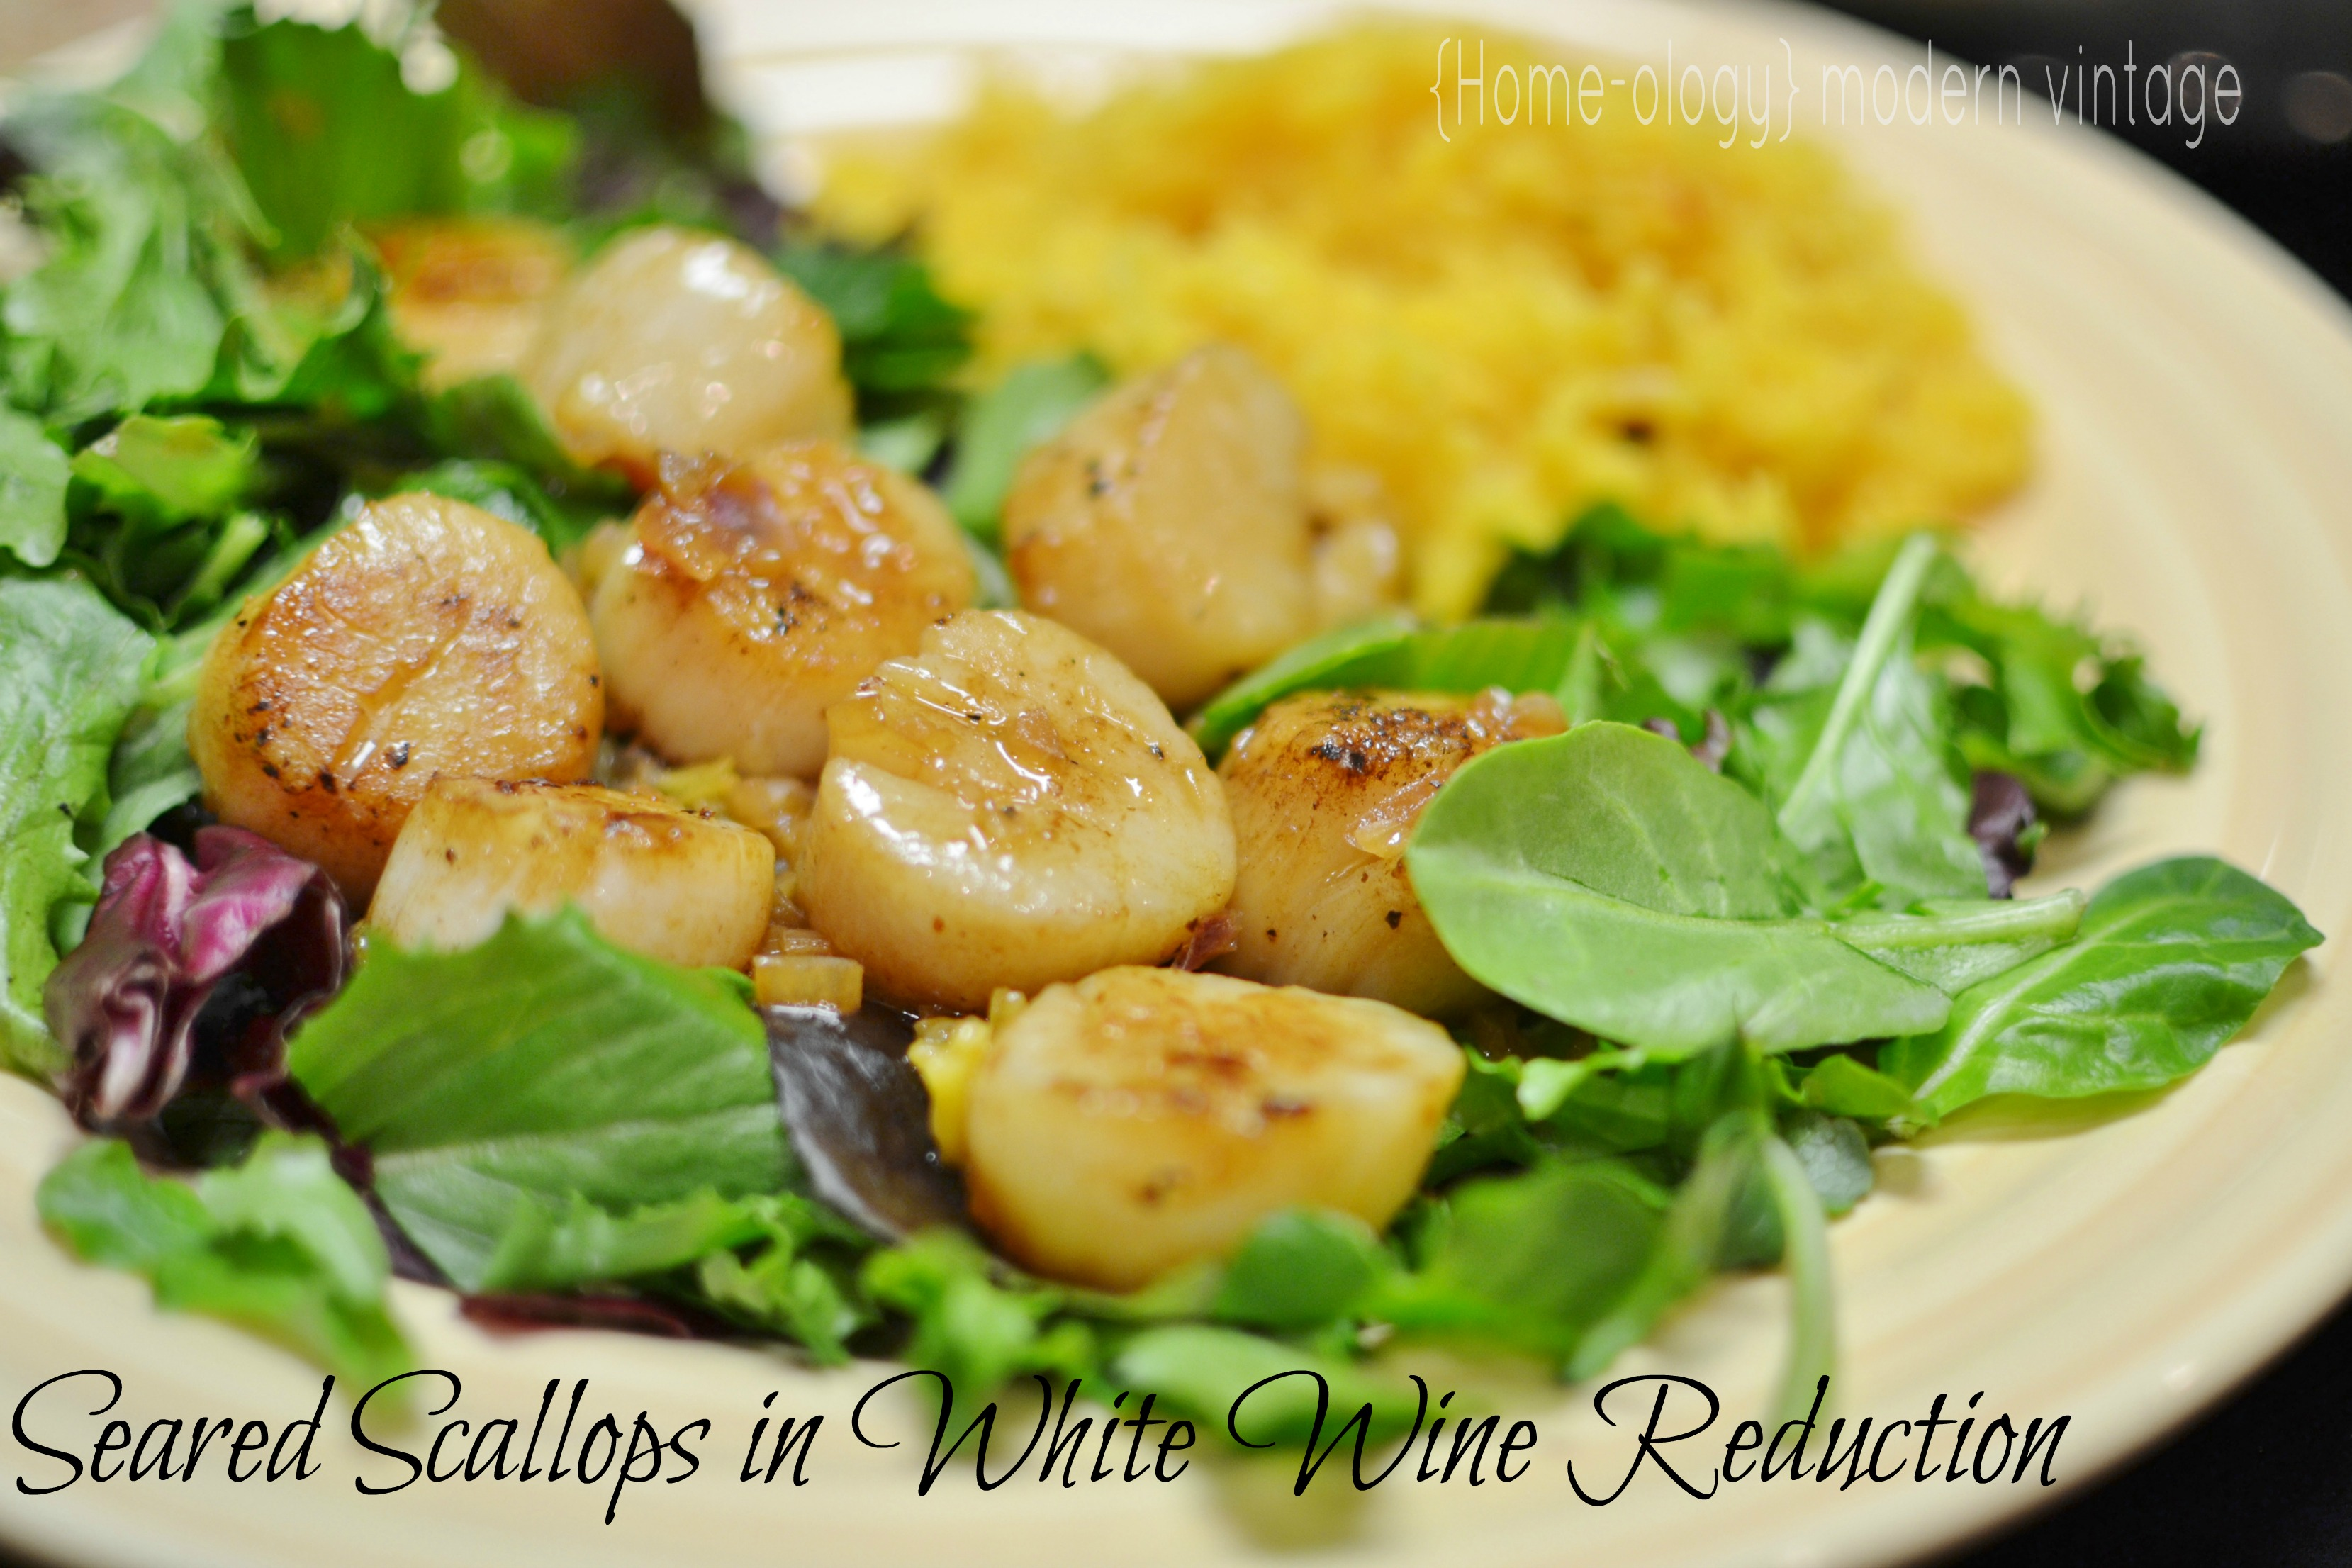 seared scallops in white wine reduction